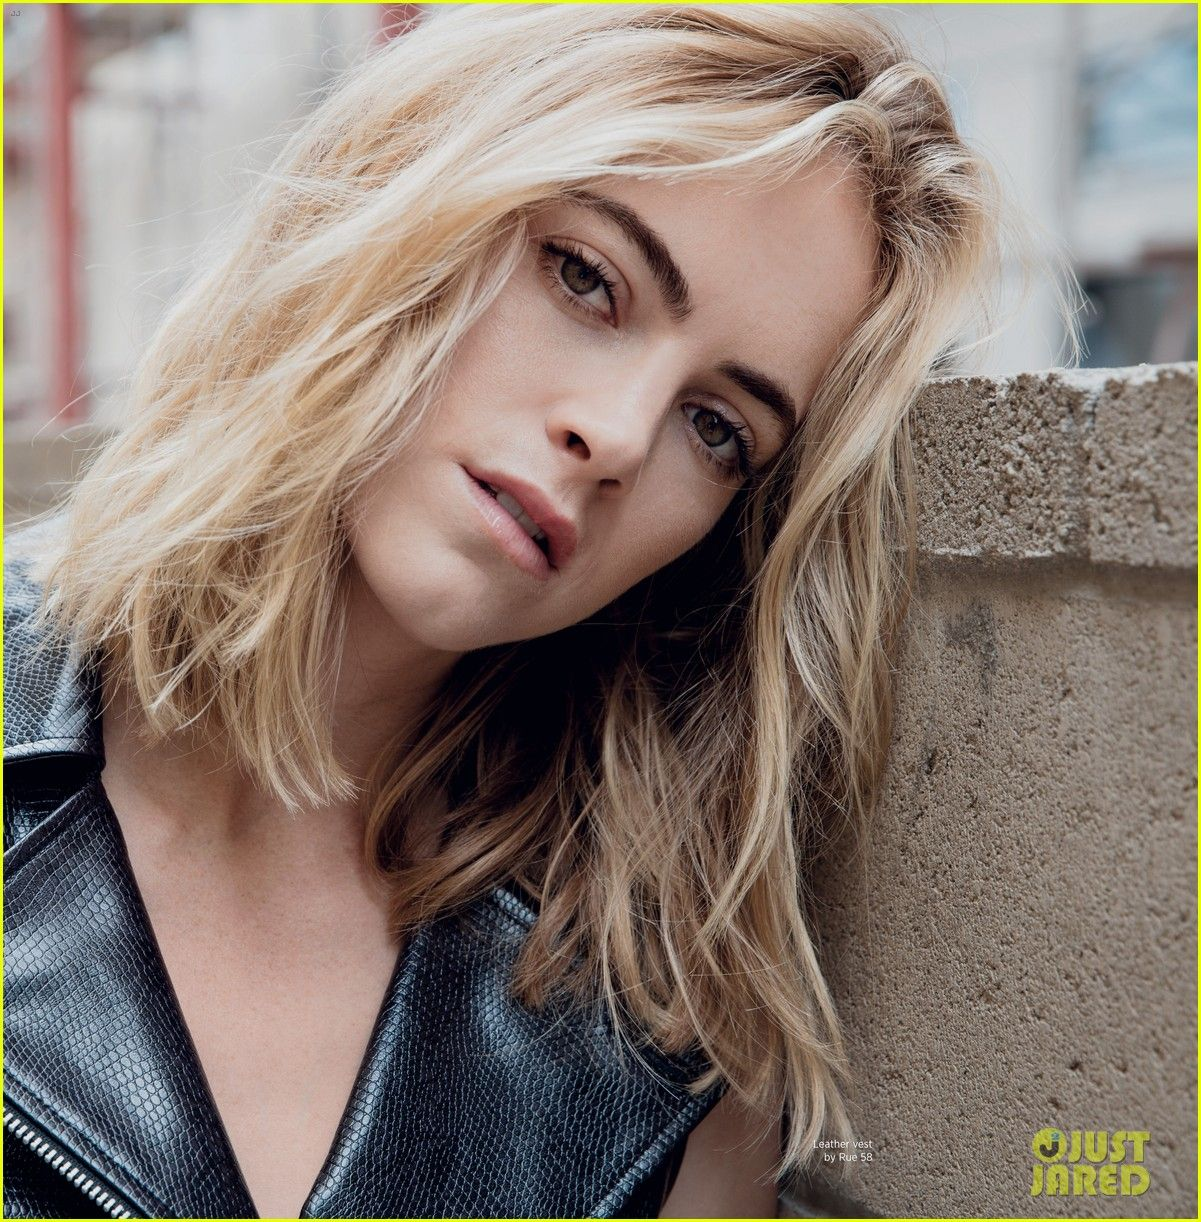 Ncis Emily Wickersham Poses In Sexy Lingerie For Da Man Photo